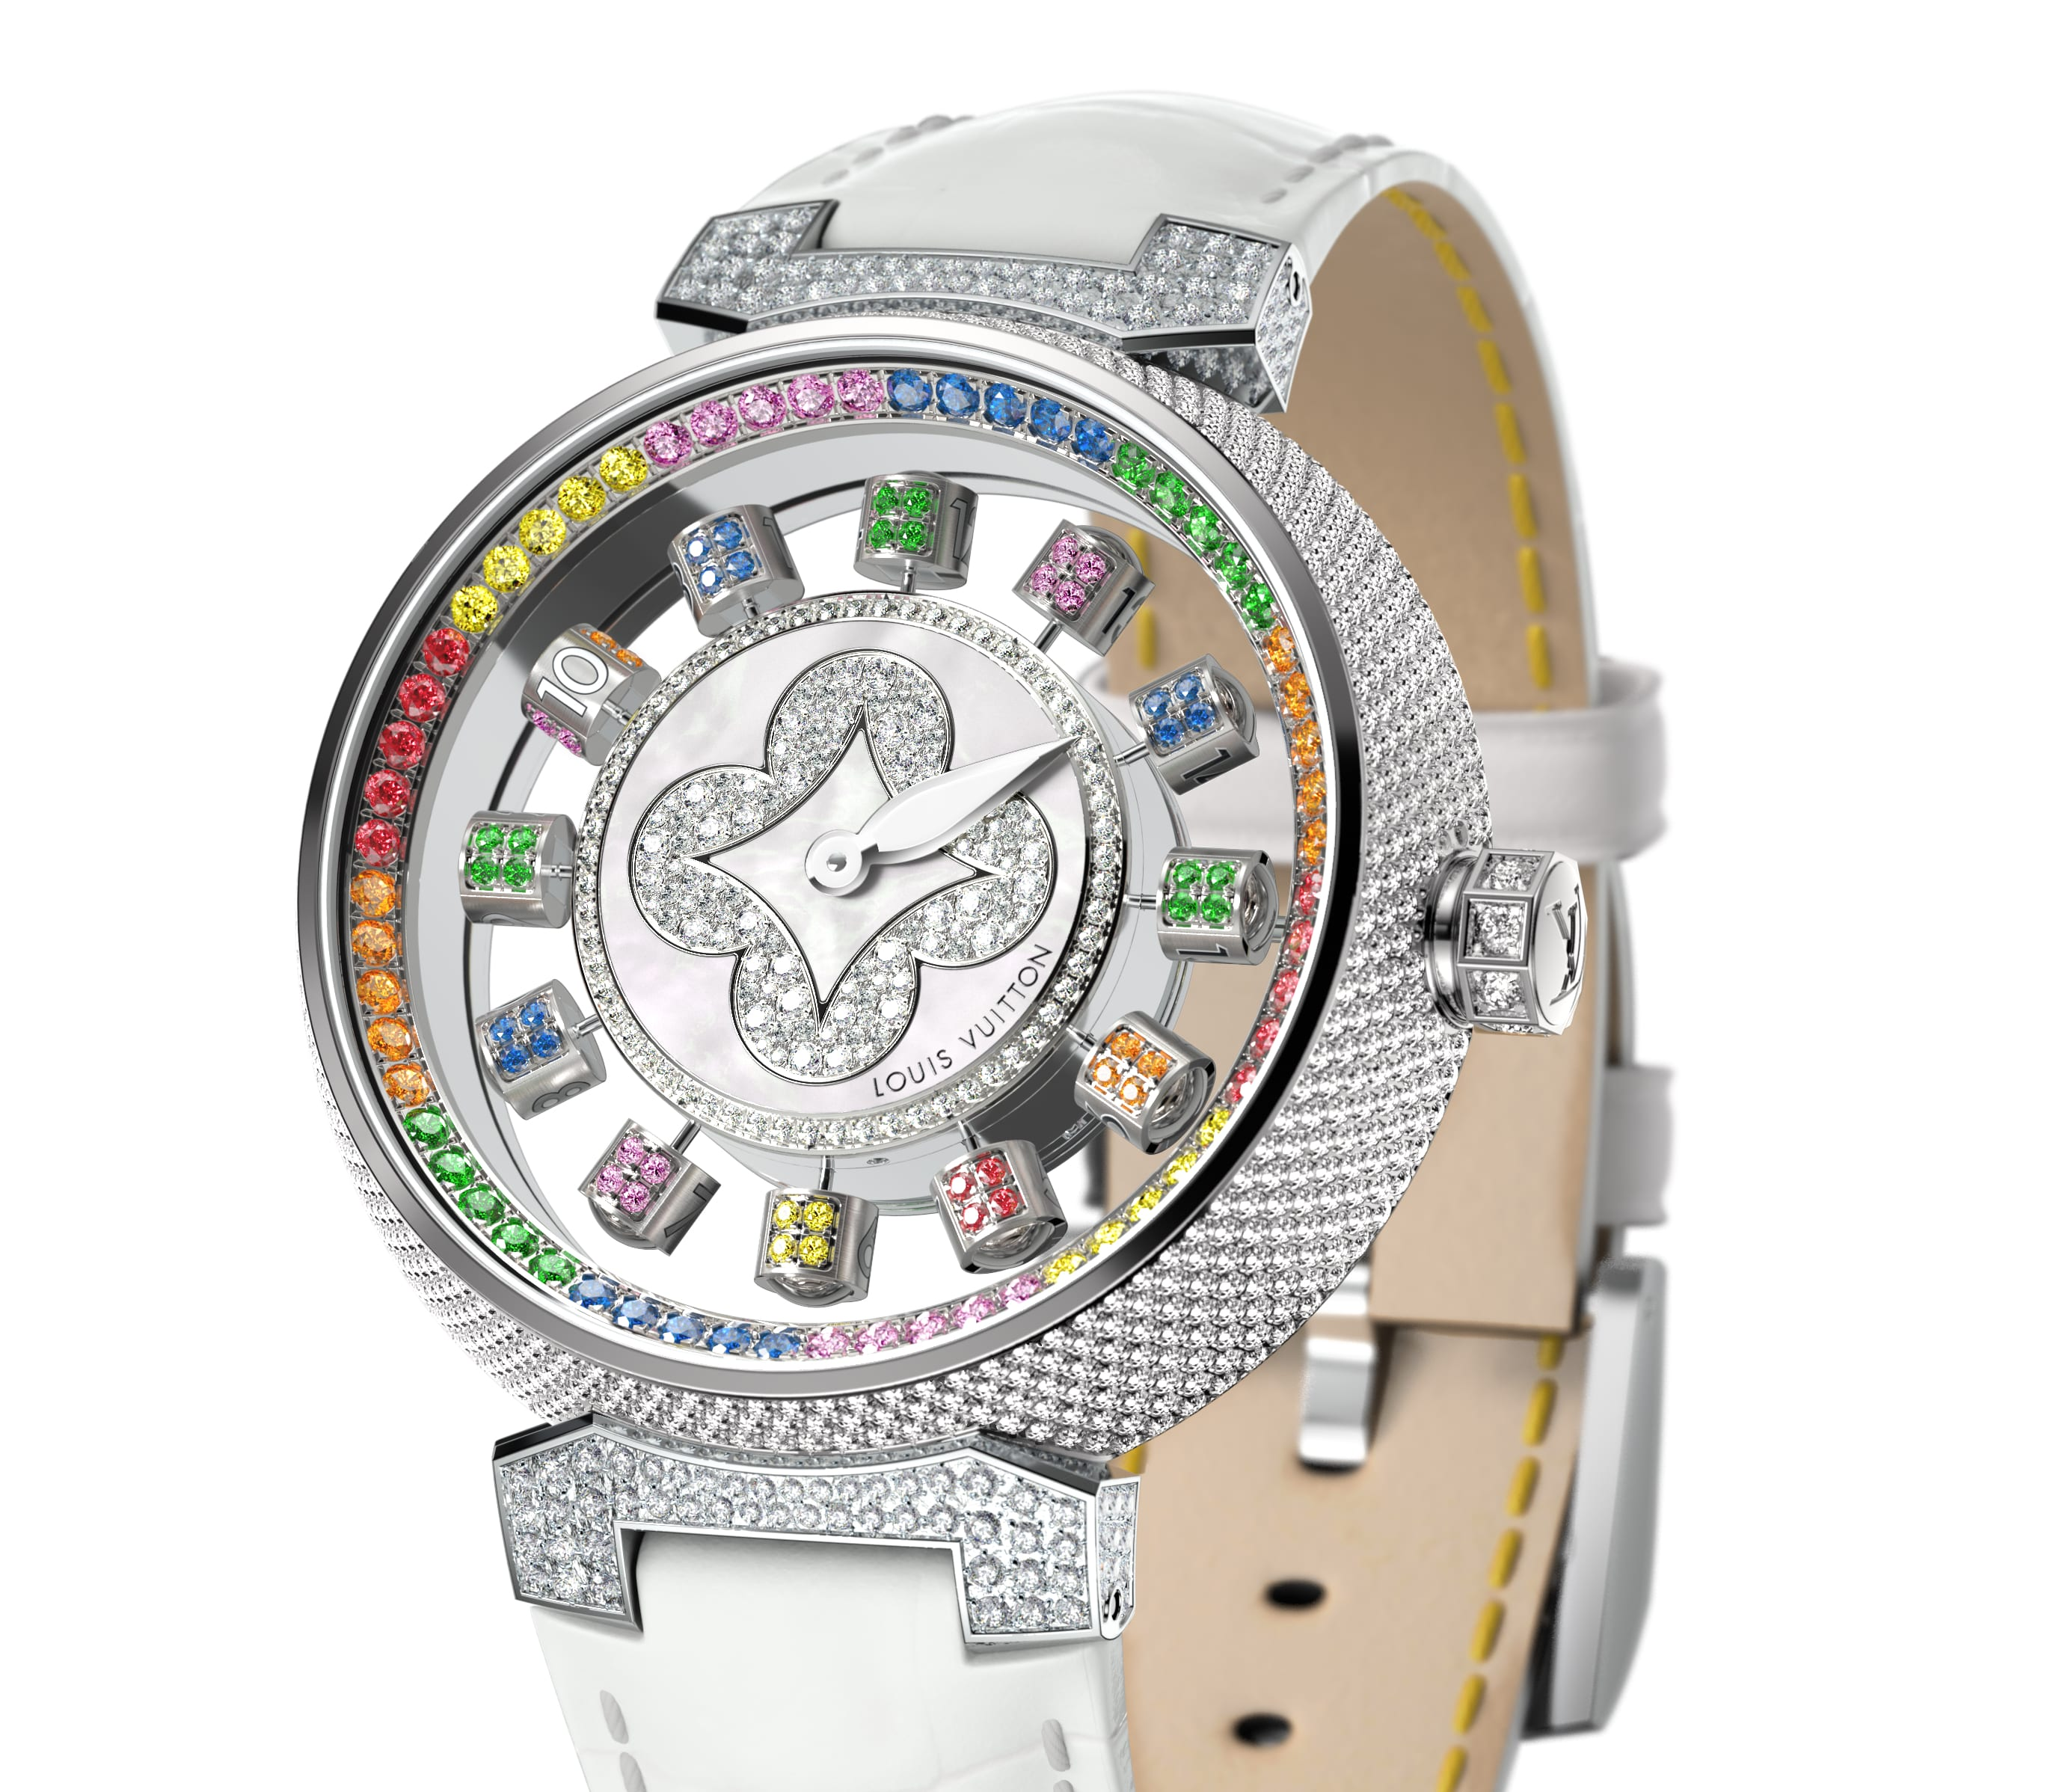 Louis Vuitton Tambour Spin Time Air Watch Collection